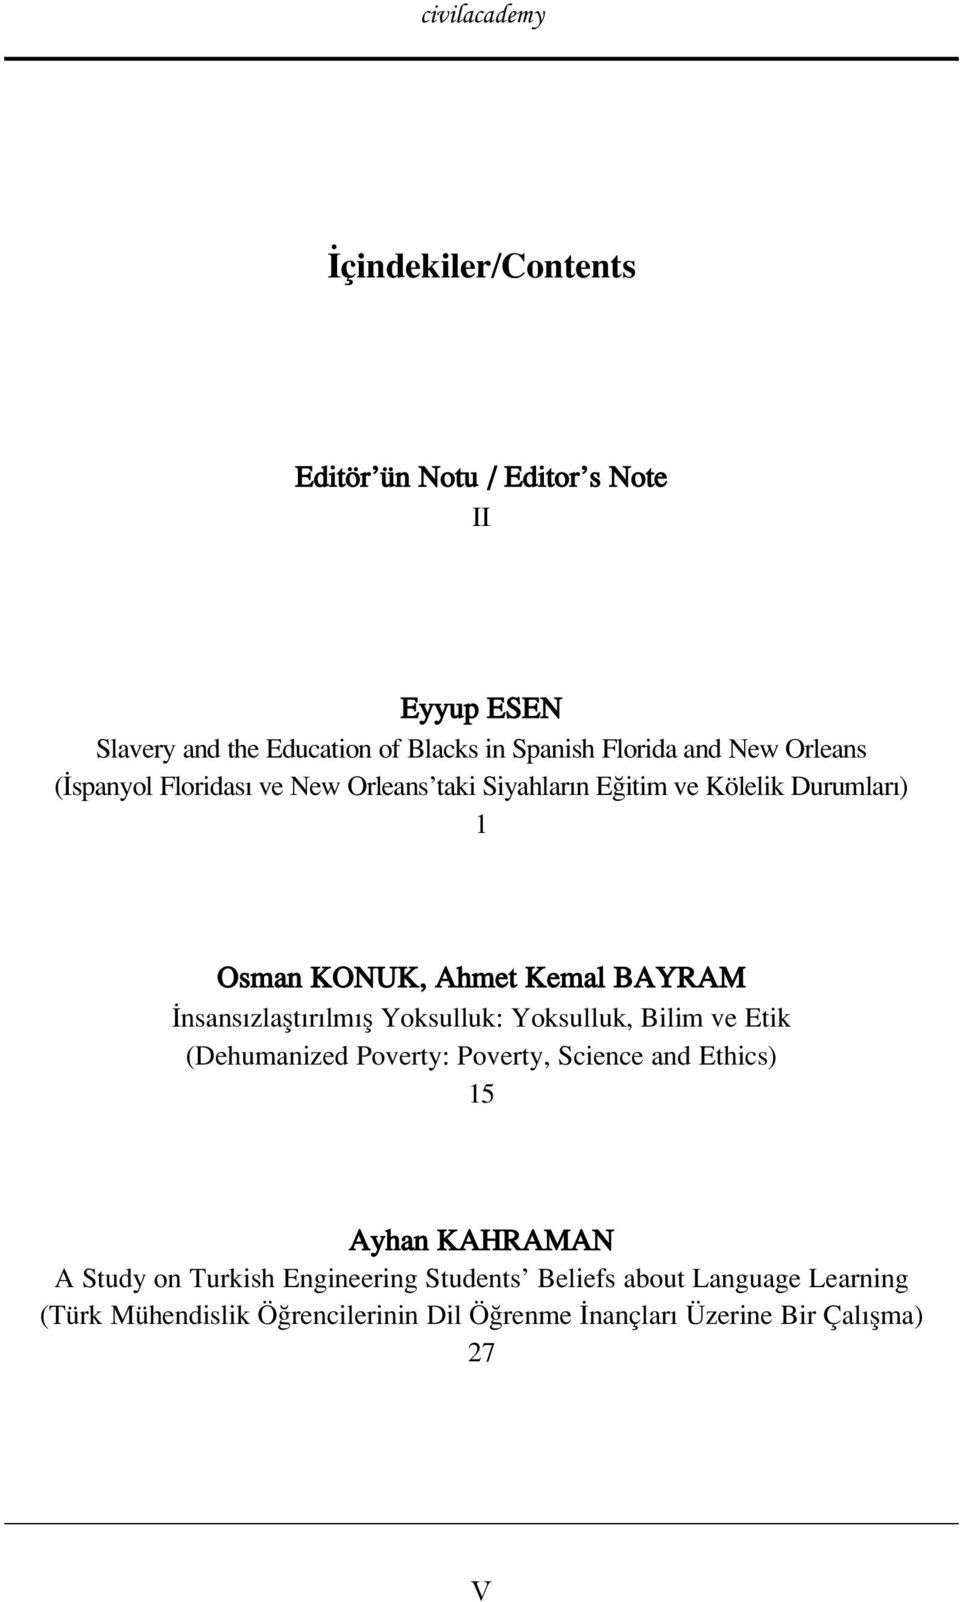 zlaflt r lm fl Yoksulluk: Yoksulluk, Bilim ve Etik (Dehumanized Poverty: Poverty, Science and Ethics) 15 Ayhan KAHRAMAN A Study on